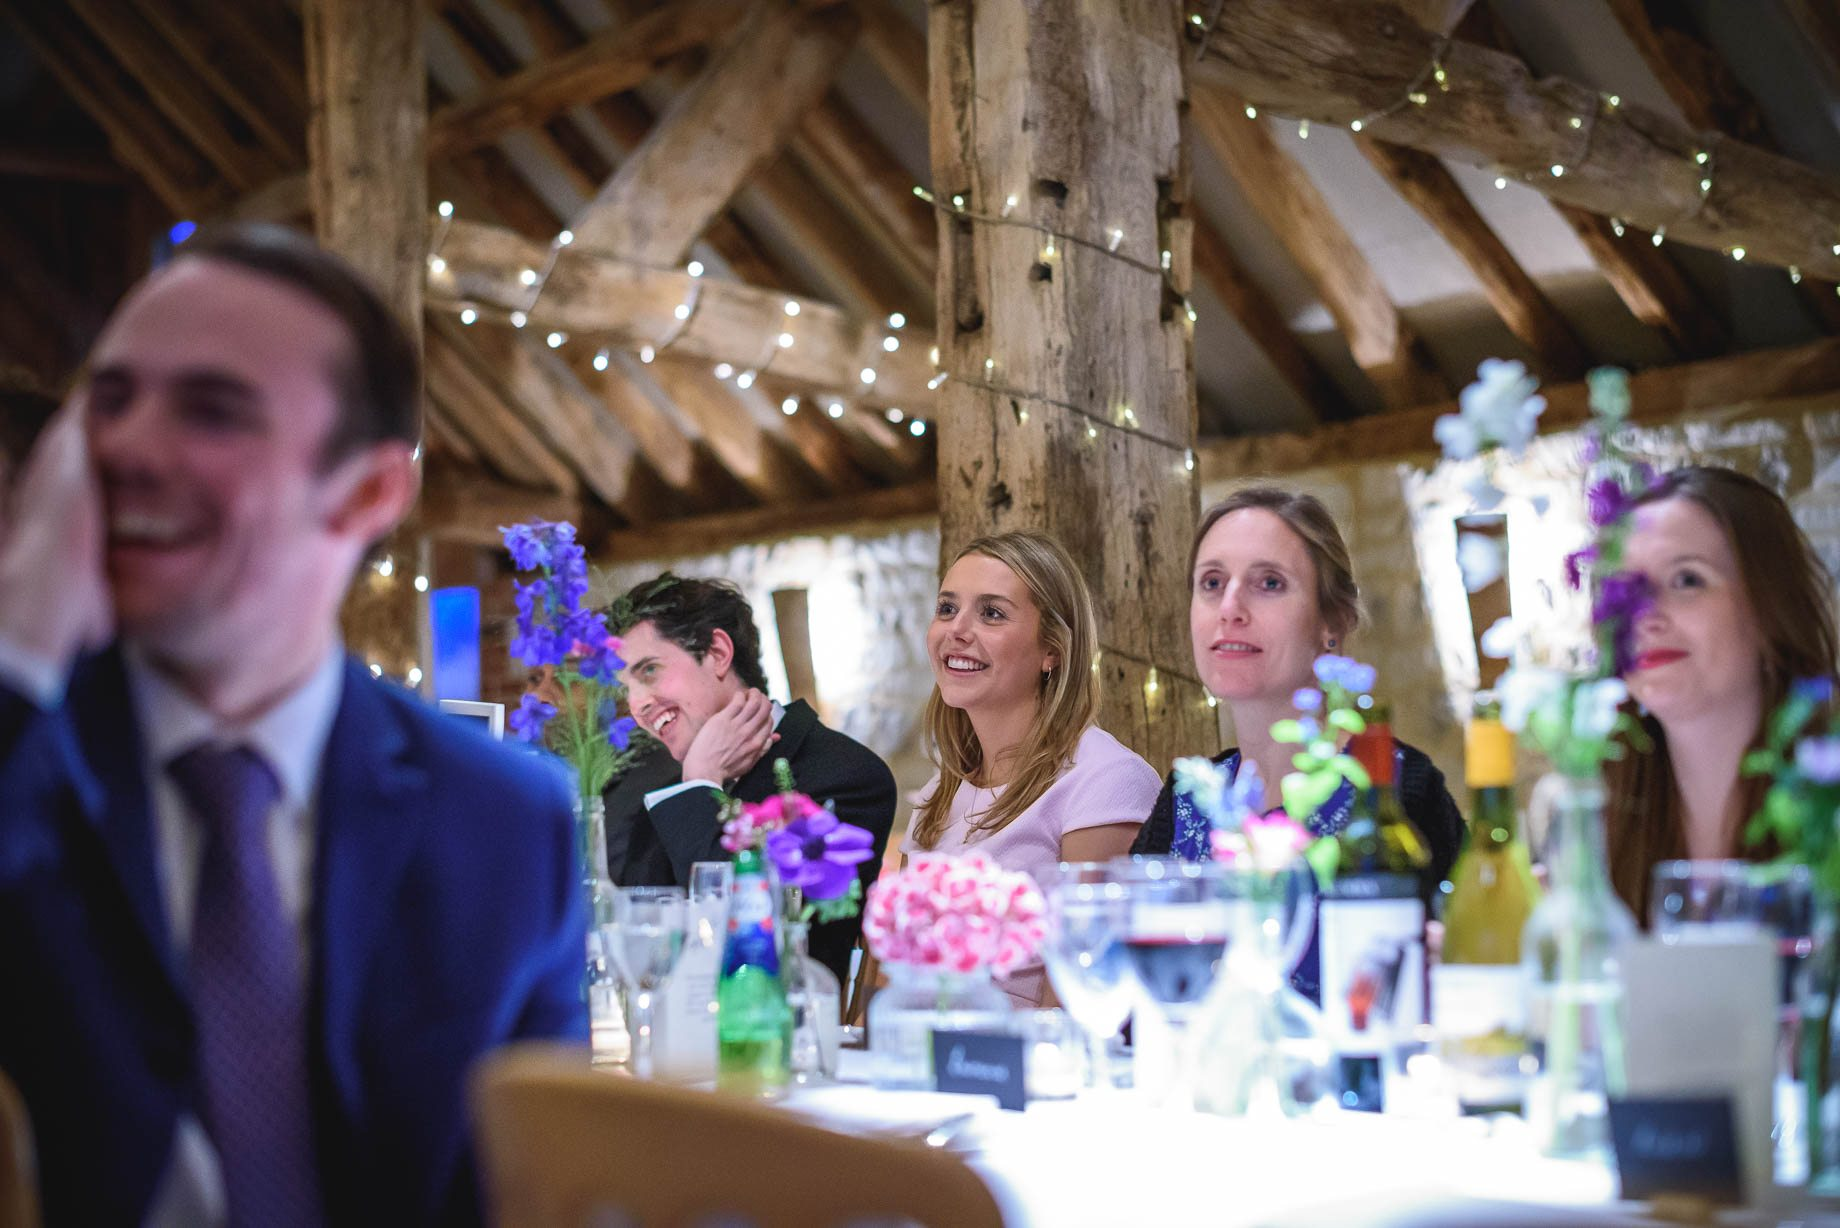 Bury Court Barn wedding photography - Ashley and Henry by Guy Collier Photography (132 of 188)